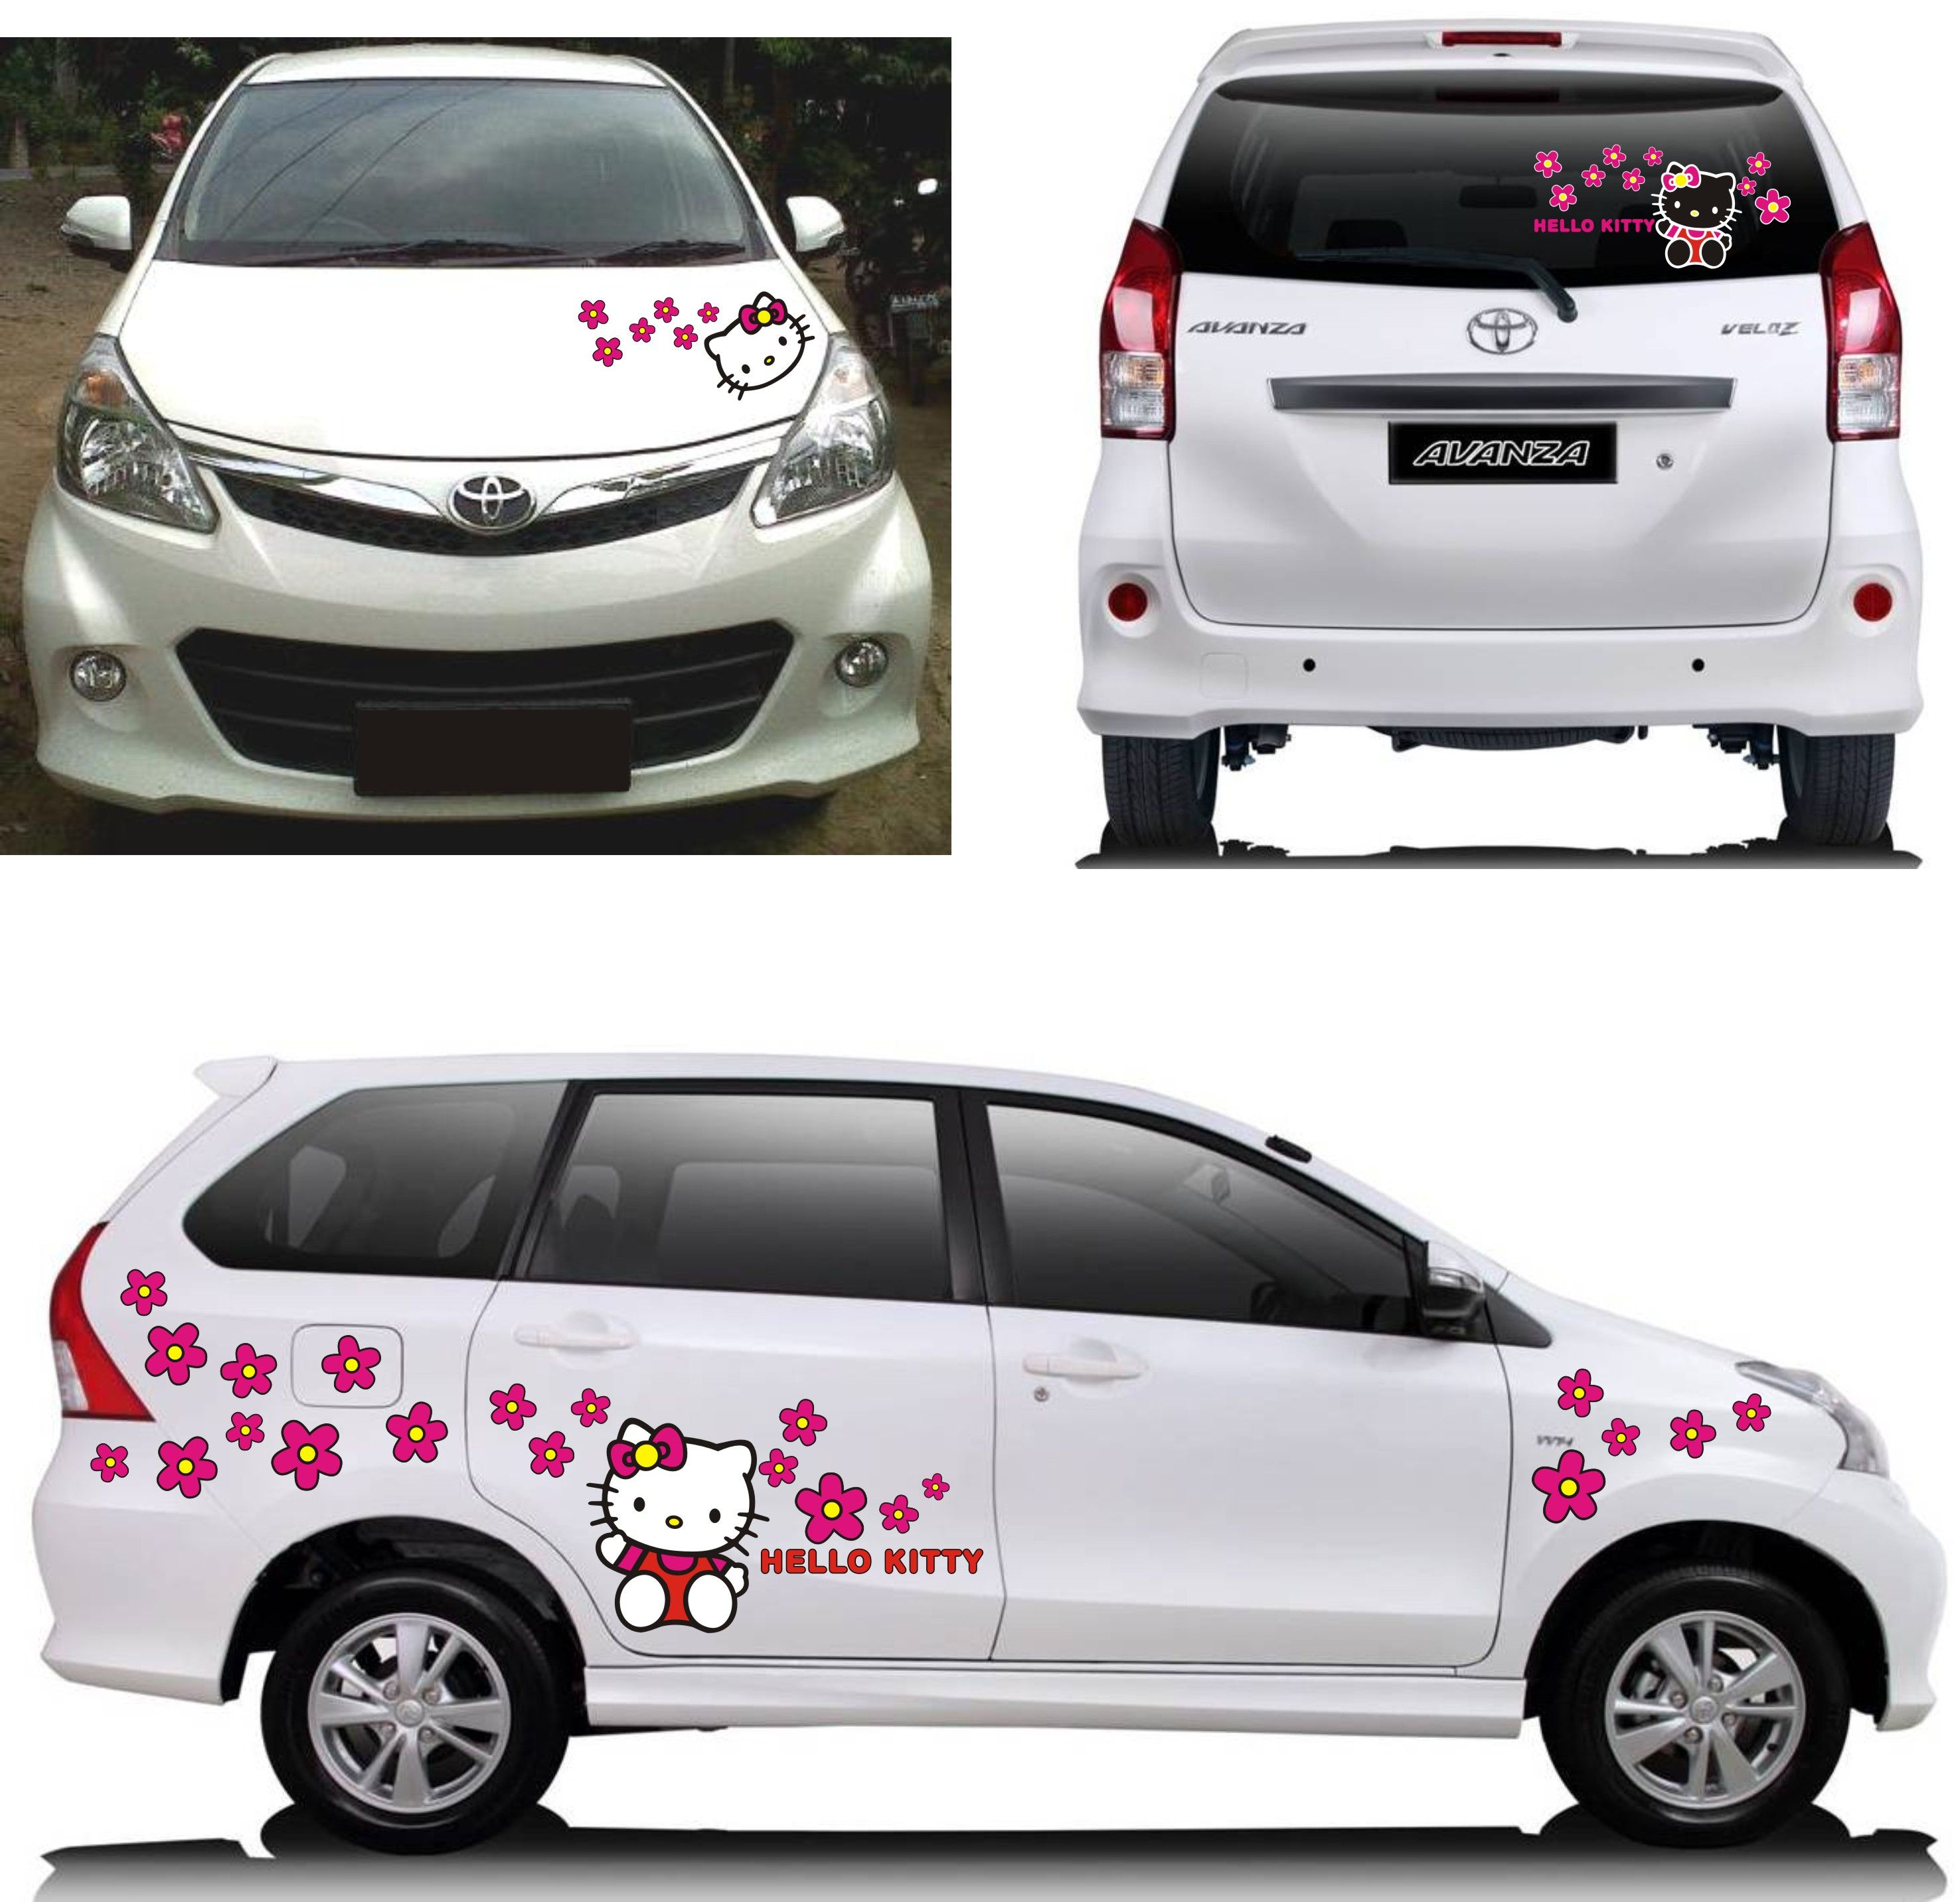 toyota avanza veloz - hello kitty sticker concept | cutting arts